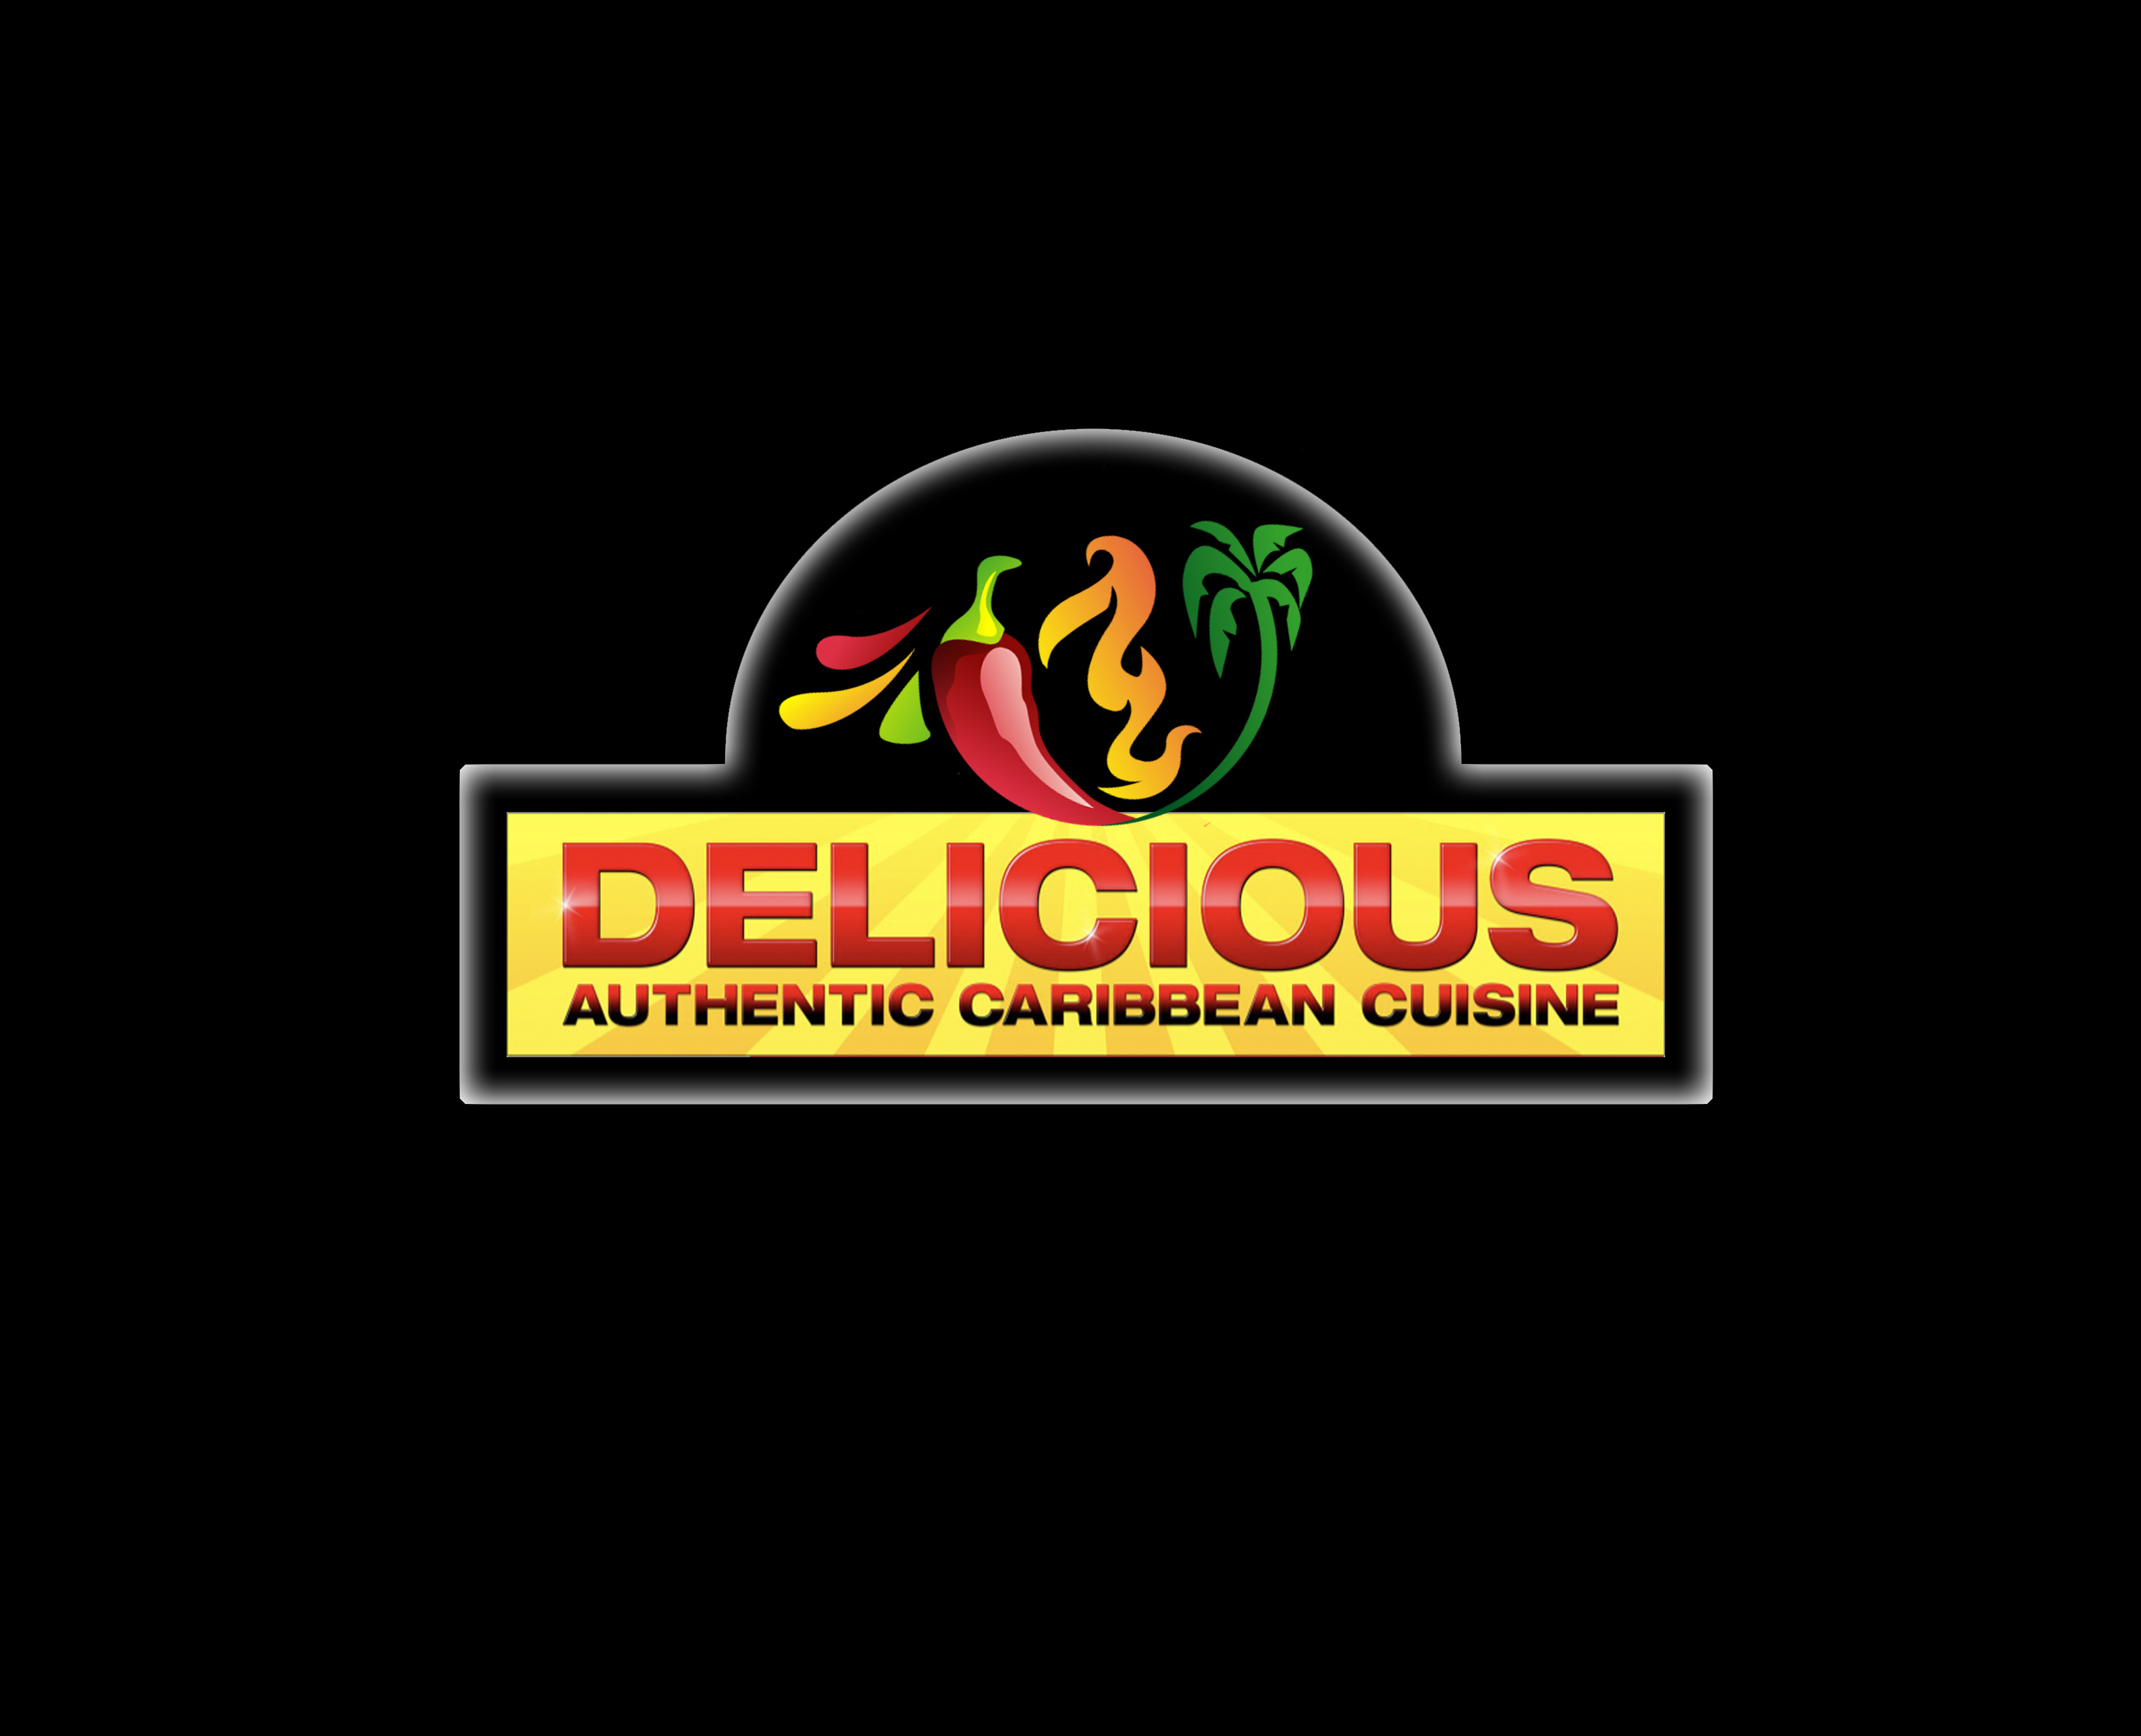 Delicious Authentic Caribbean Cuisine